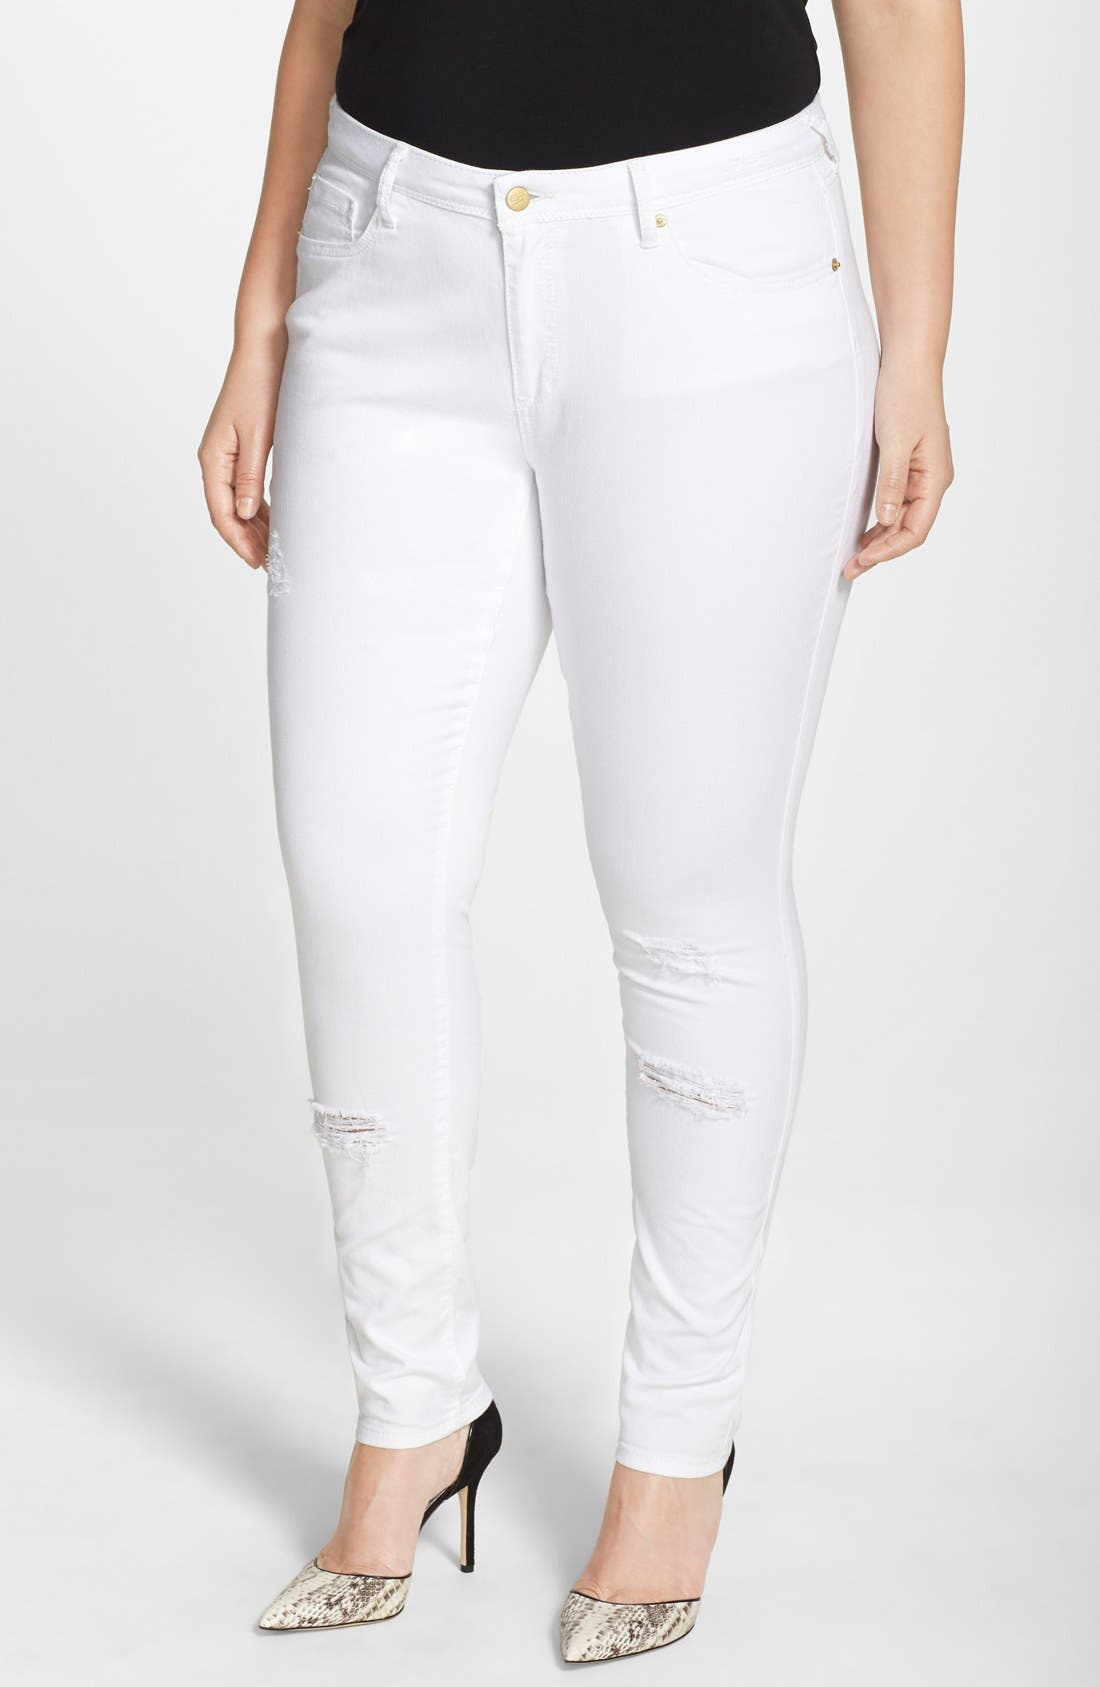 Alternate Image 1 Selected - Poetic Justice 'Maya' Destroyed White Skinny Jeans (Plus Size)